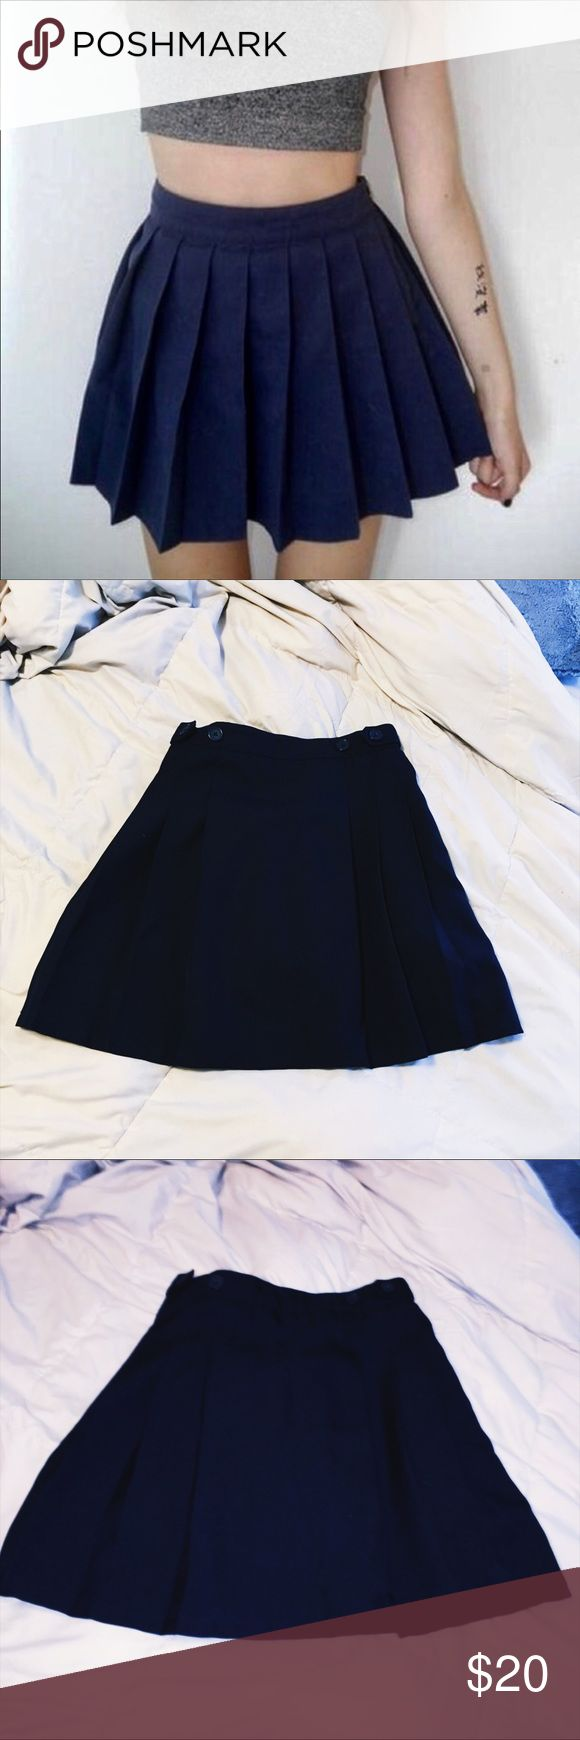 📚 Navy Blue Pleated Schoolgirl Mini Skirt 📚 Navy Blue Pleated Schoolgirl Mini Skirt Size 2  High waisted - High Waisted  Zips on the side with buttons  All around pleated  Chaps by Ralph Lauren  Perfect condition Urban Outfitters Skirts Mini